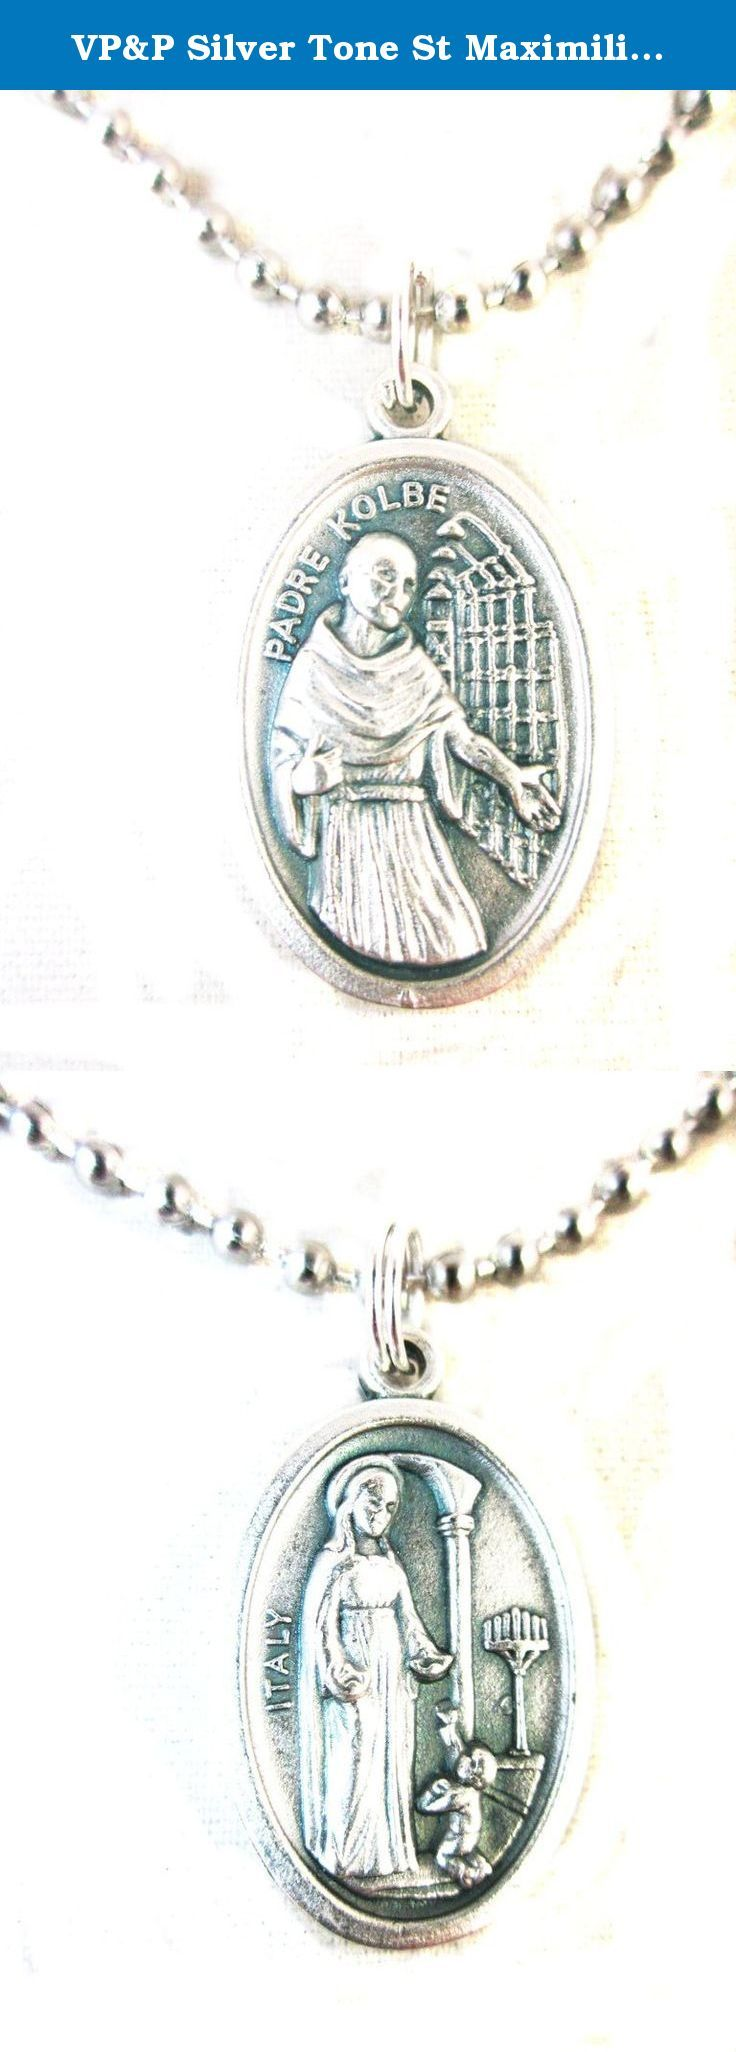 """VP&P Silver Tone St Maximilian Kolbe / Vision Medal Pendant Necklace 24"""" Ball Chain. 1"""" Die-cast oxidized medal made in Italy, on a 24"""" 2.4mm Stainless steel Ball chain, made in USA. Patron of Families, Journalists, Prisoners, Addiction Recovery. Prayer card included."""